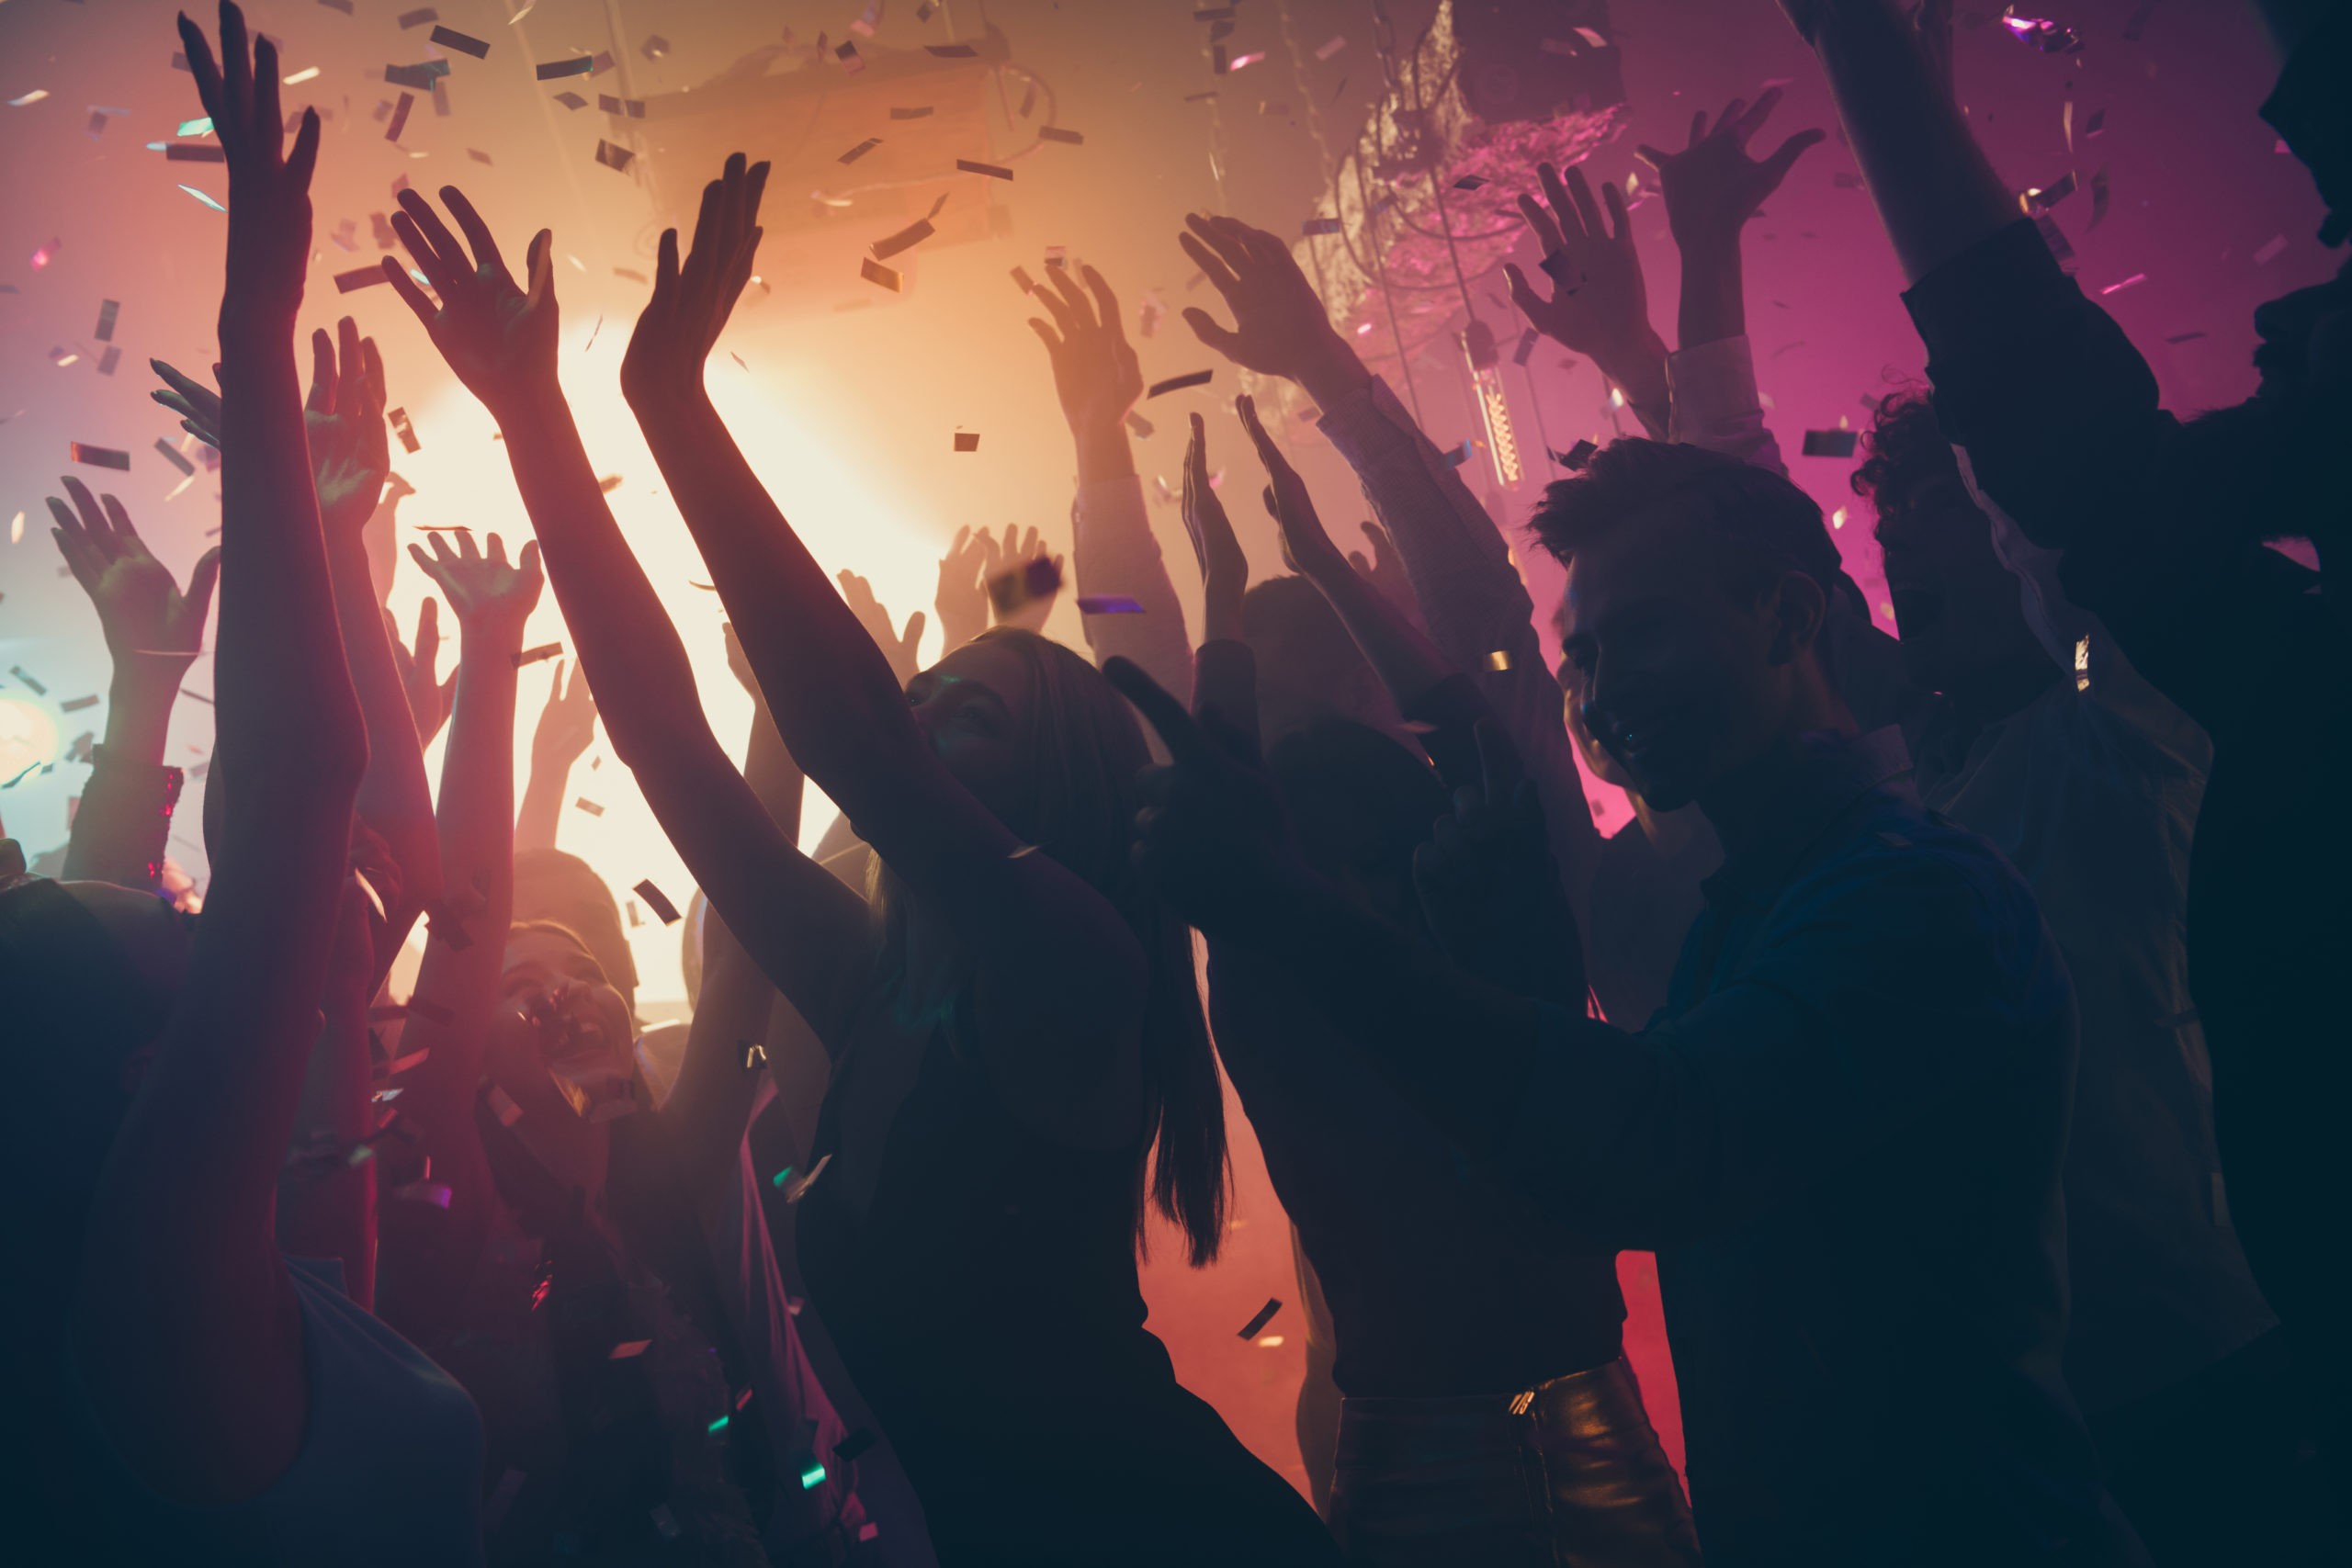 silhouetted young men and women dancing on dance floor with confetti